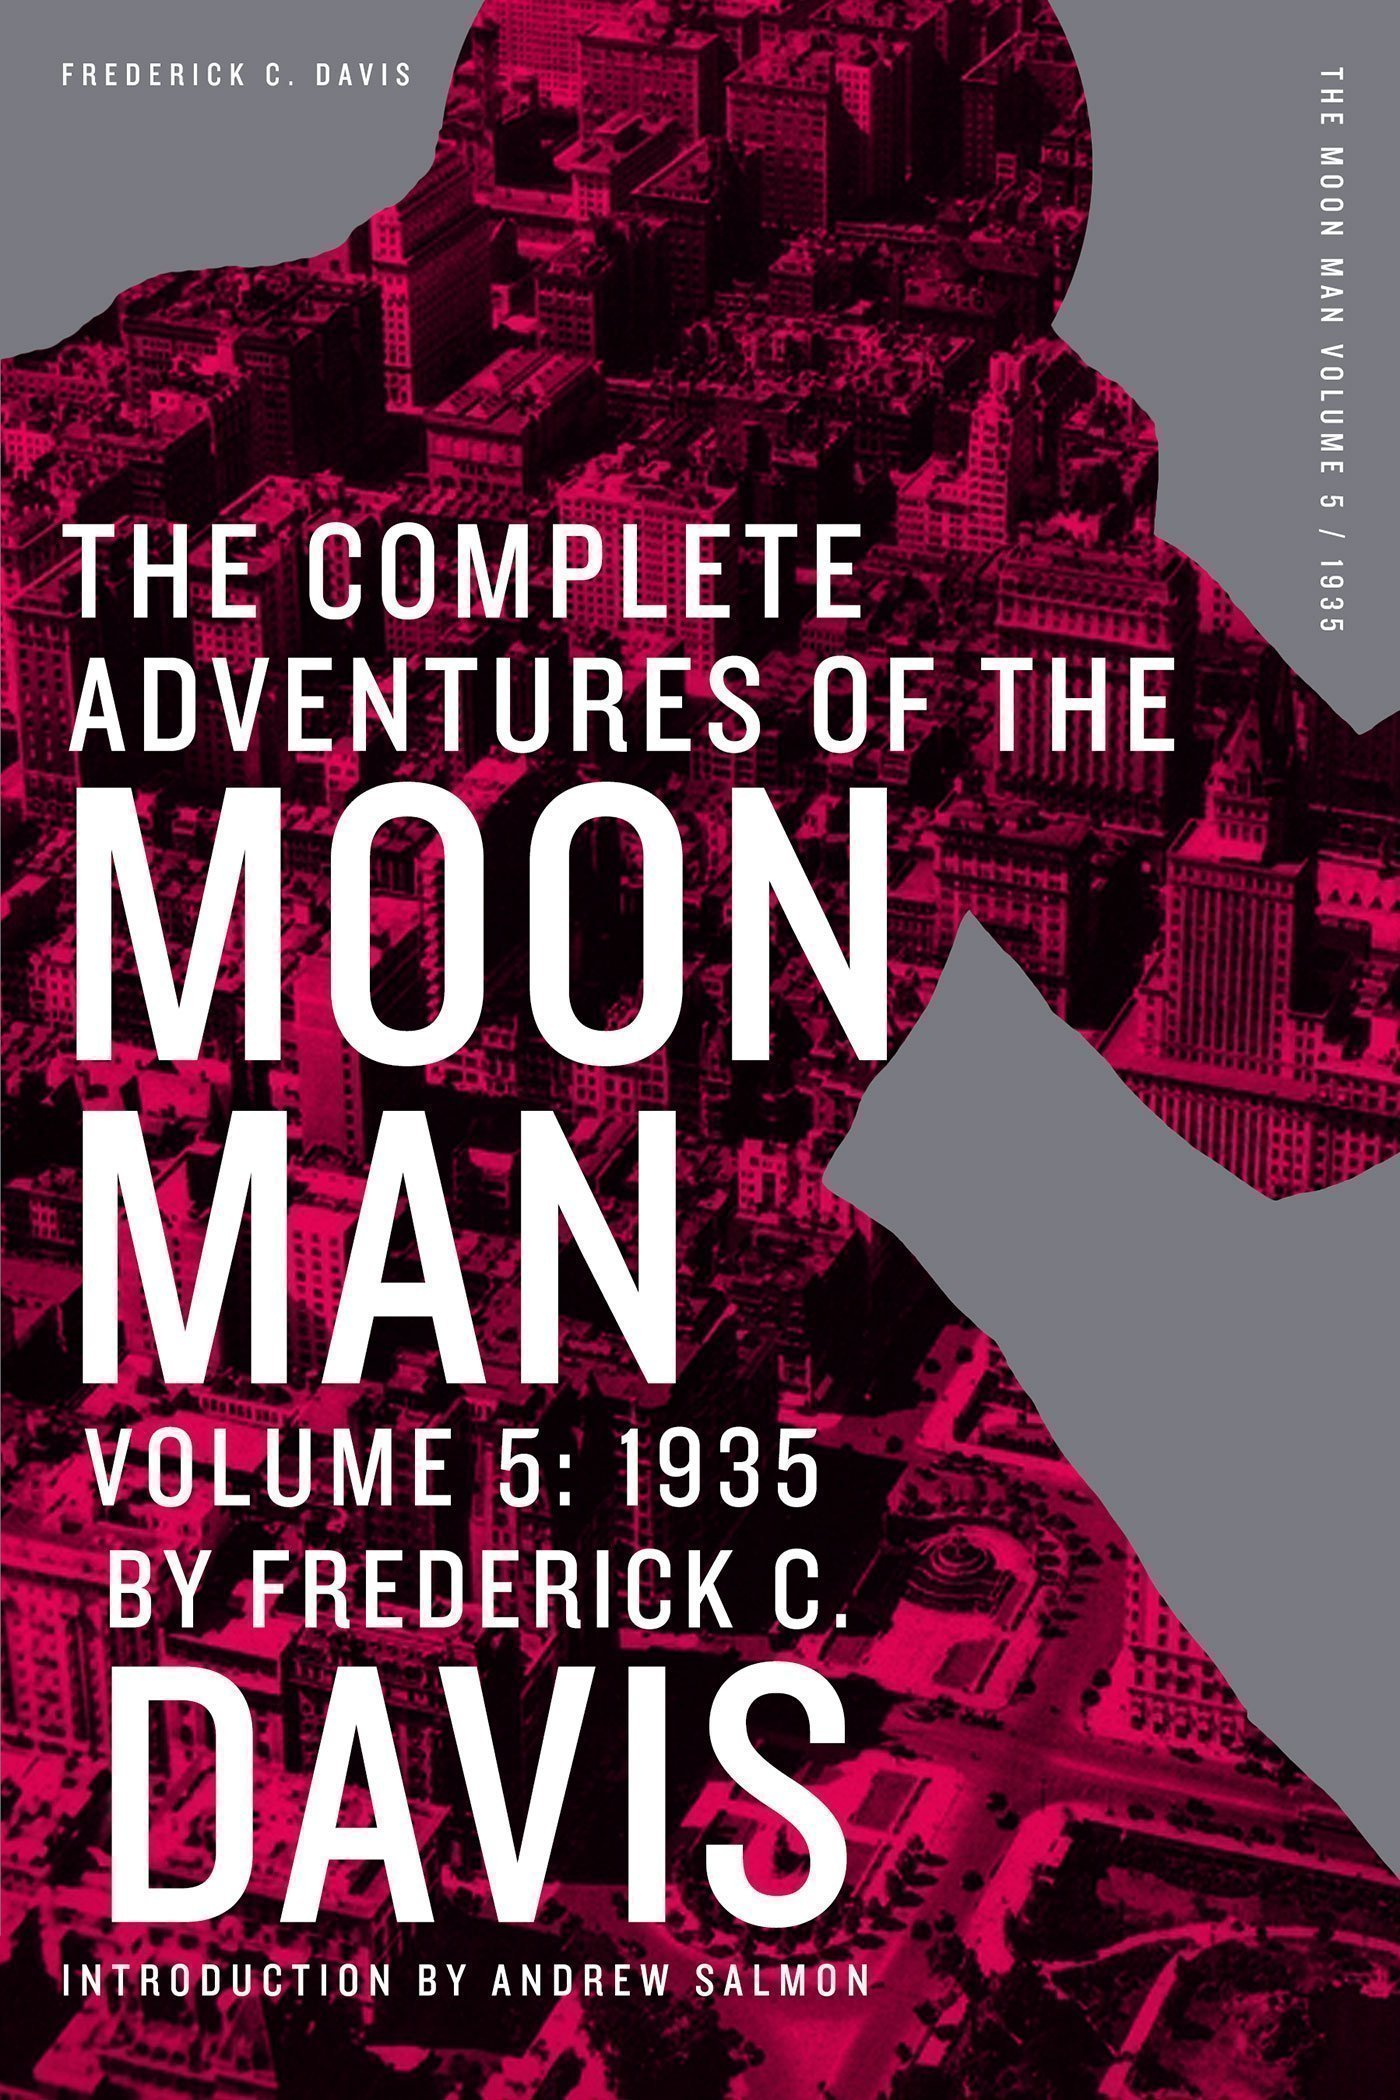 The Complete Adventures of the Moon Man, Volume 5: 1935